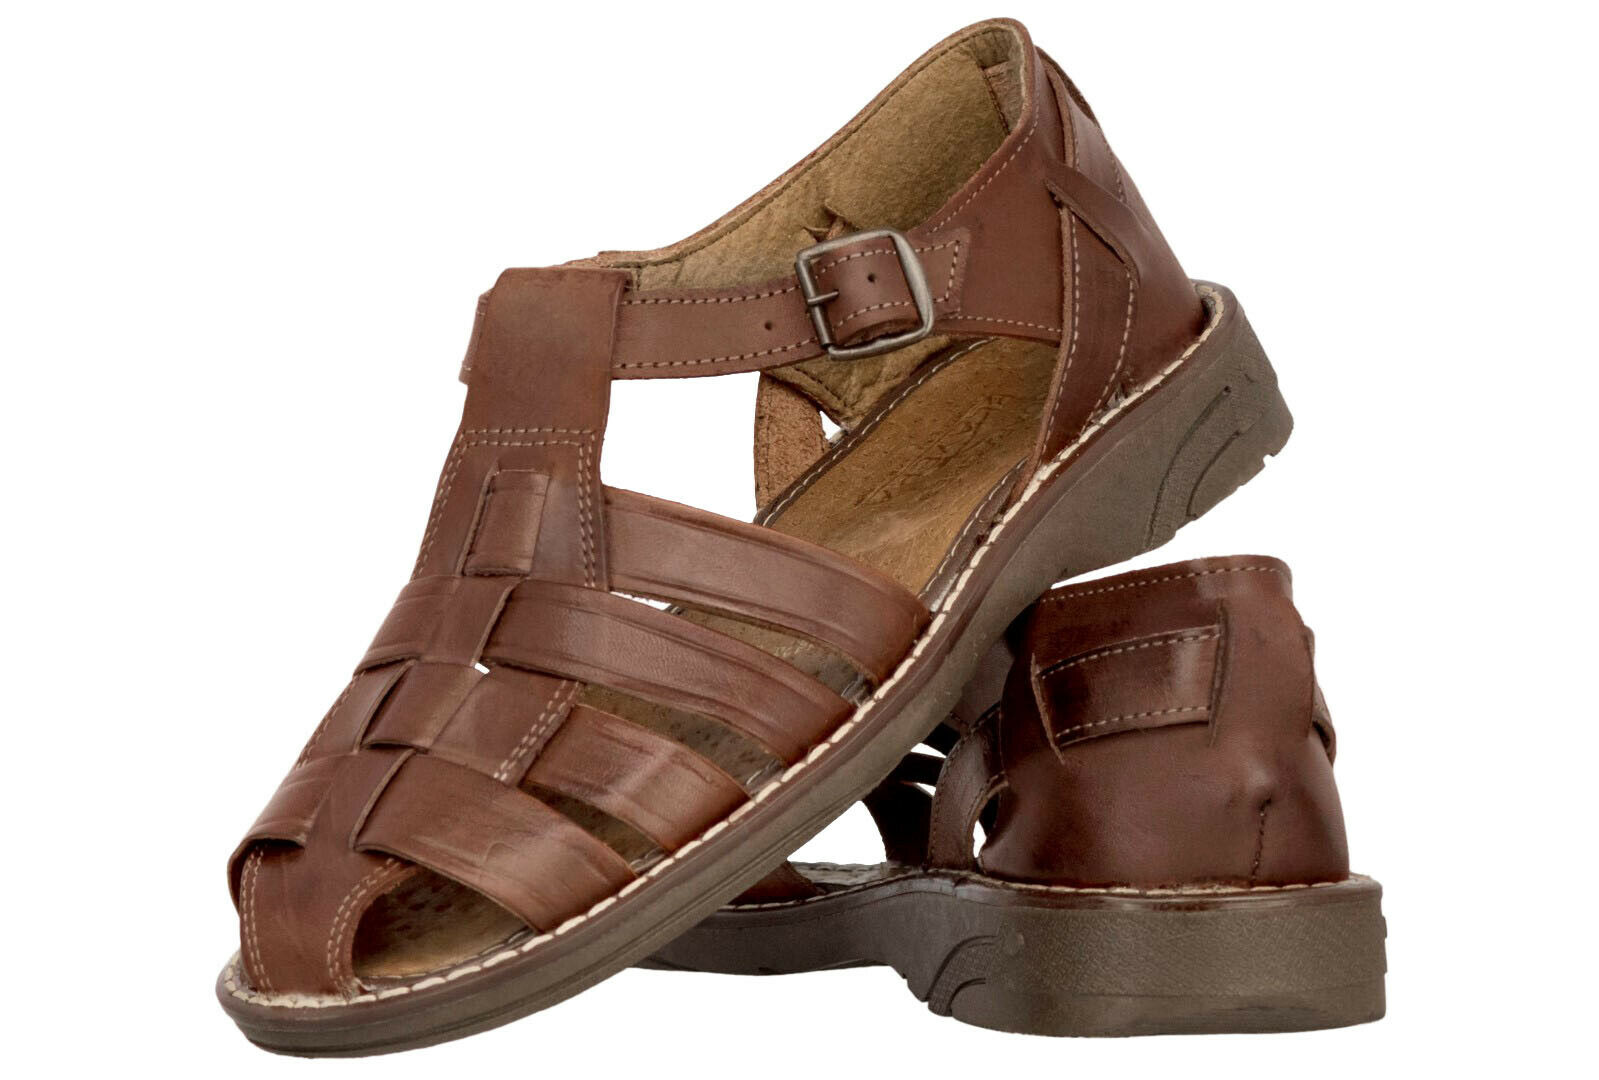 Men's Mexican Huaraches Real Leather Brown Sandals Strapped Closed Shoes